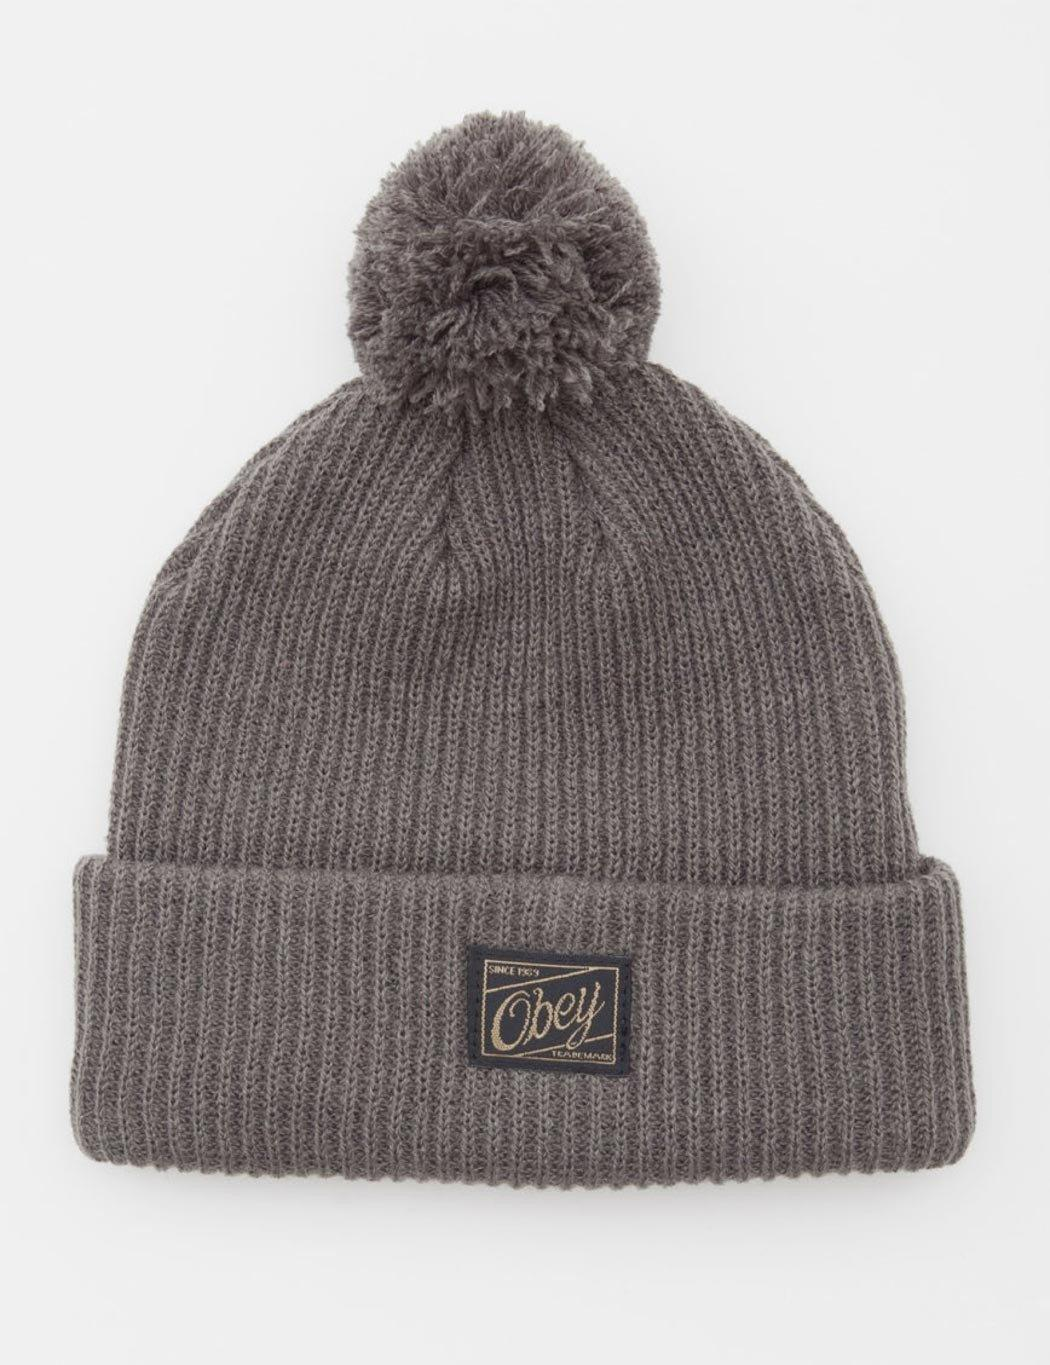 e54d0fddd58 Pointer Obey Old Timey Pom Pom Beanie Hat in Gray - Lyst